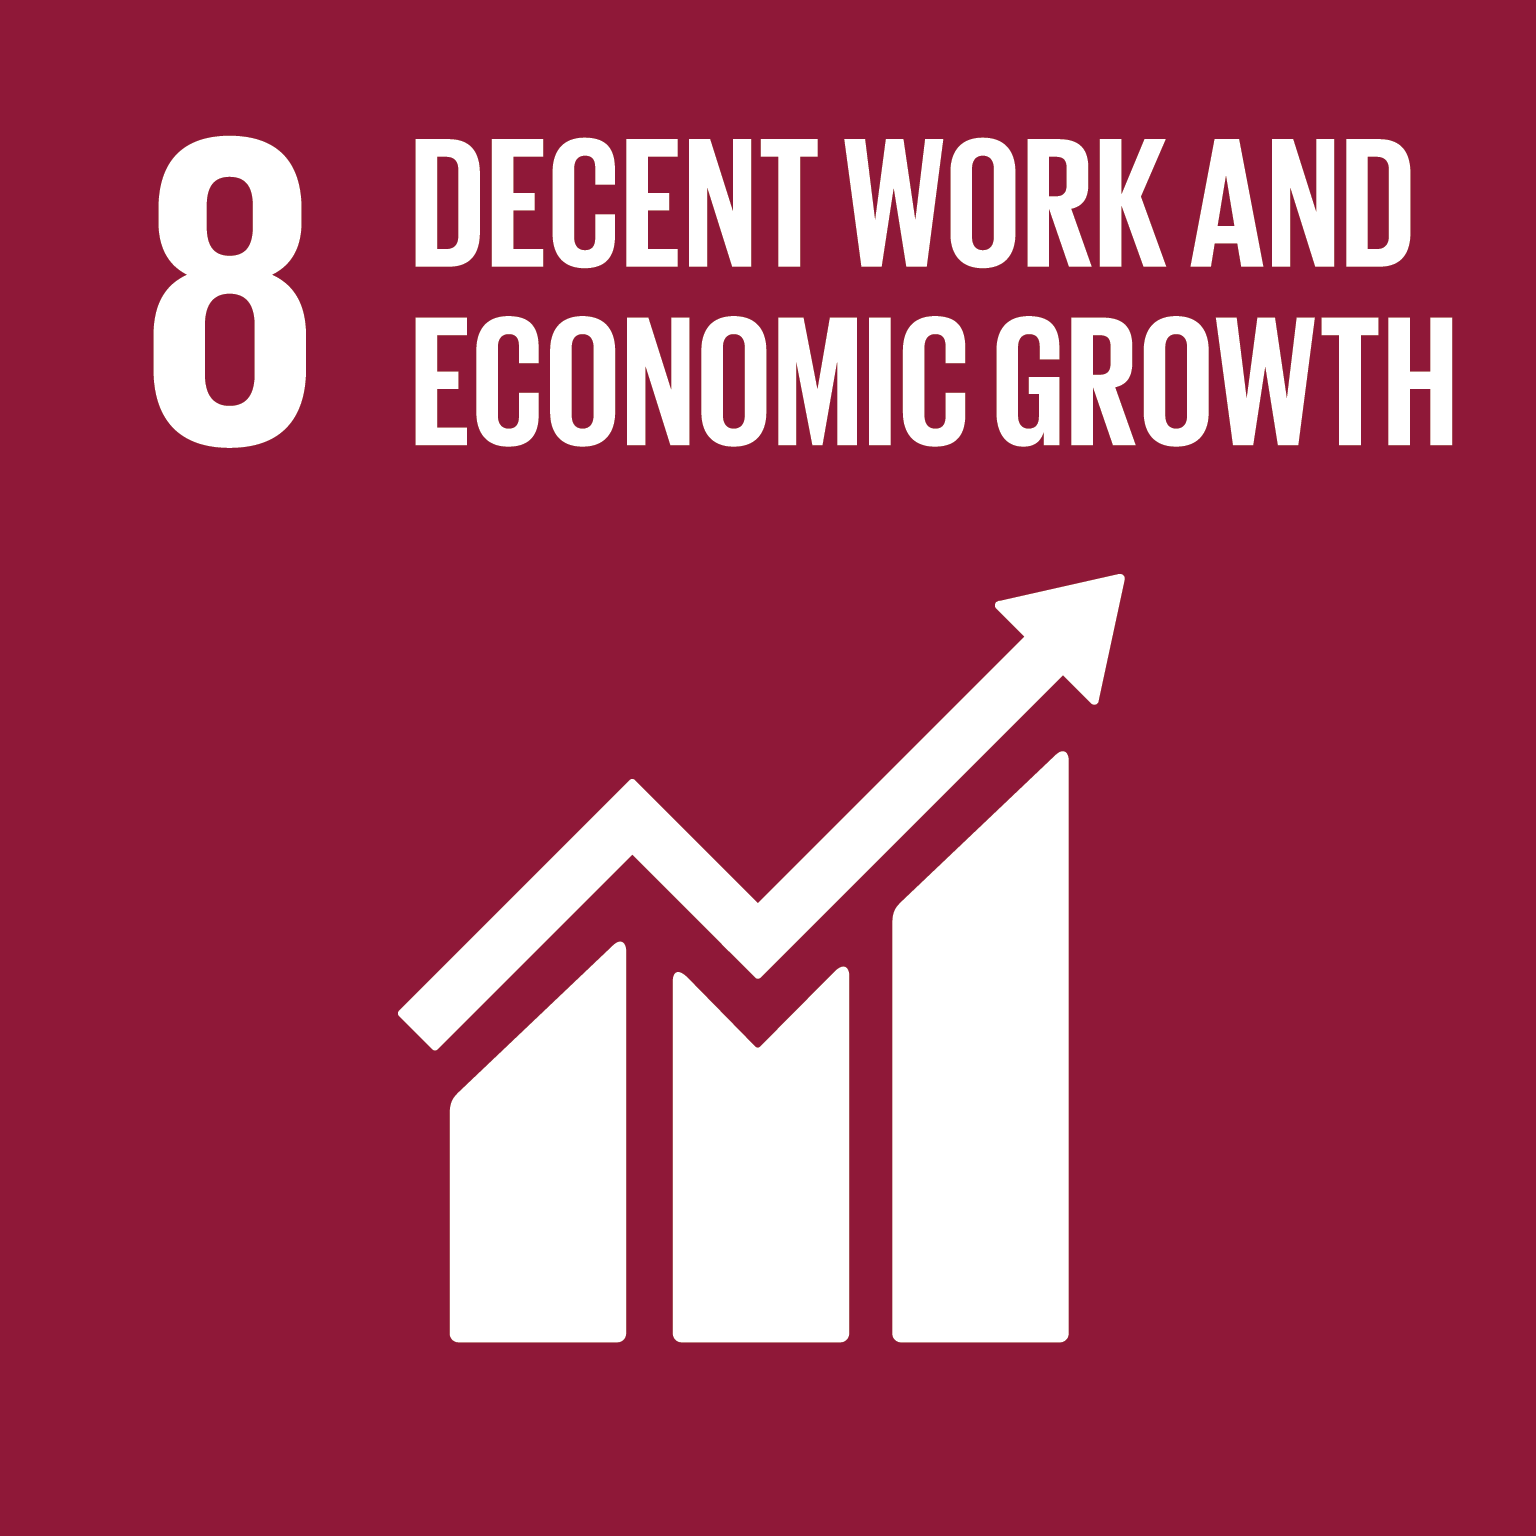 Goal 8: Decent Work, the text of this infographic is listed below